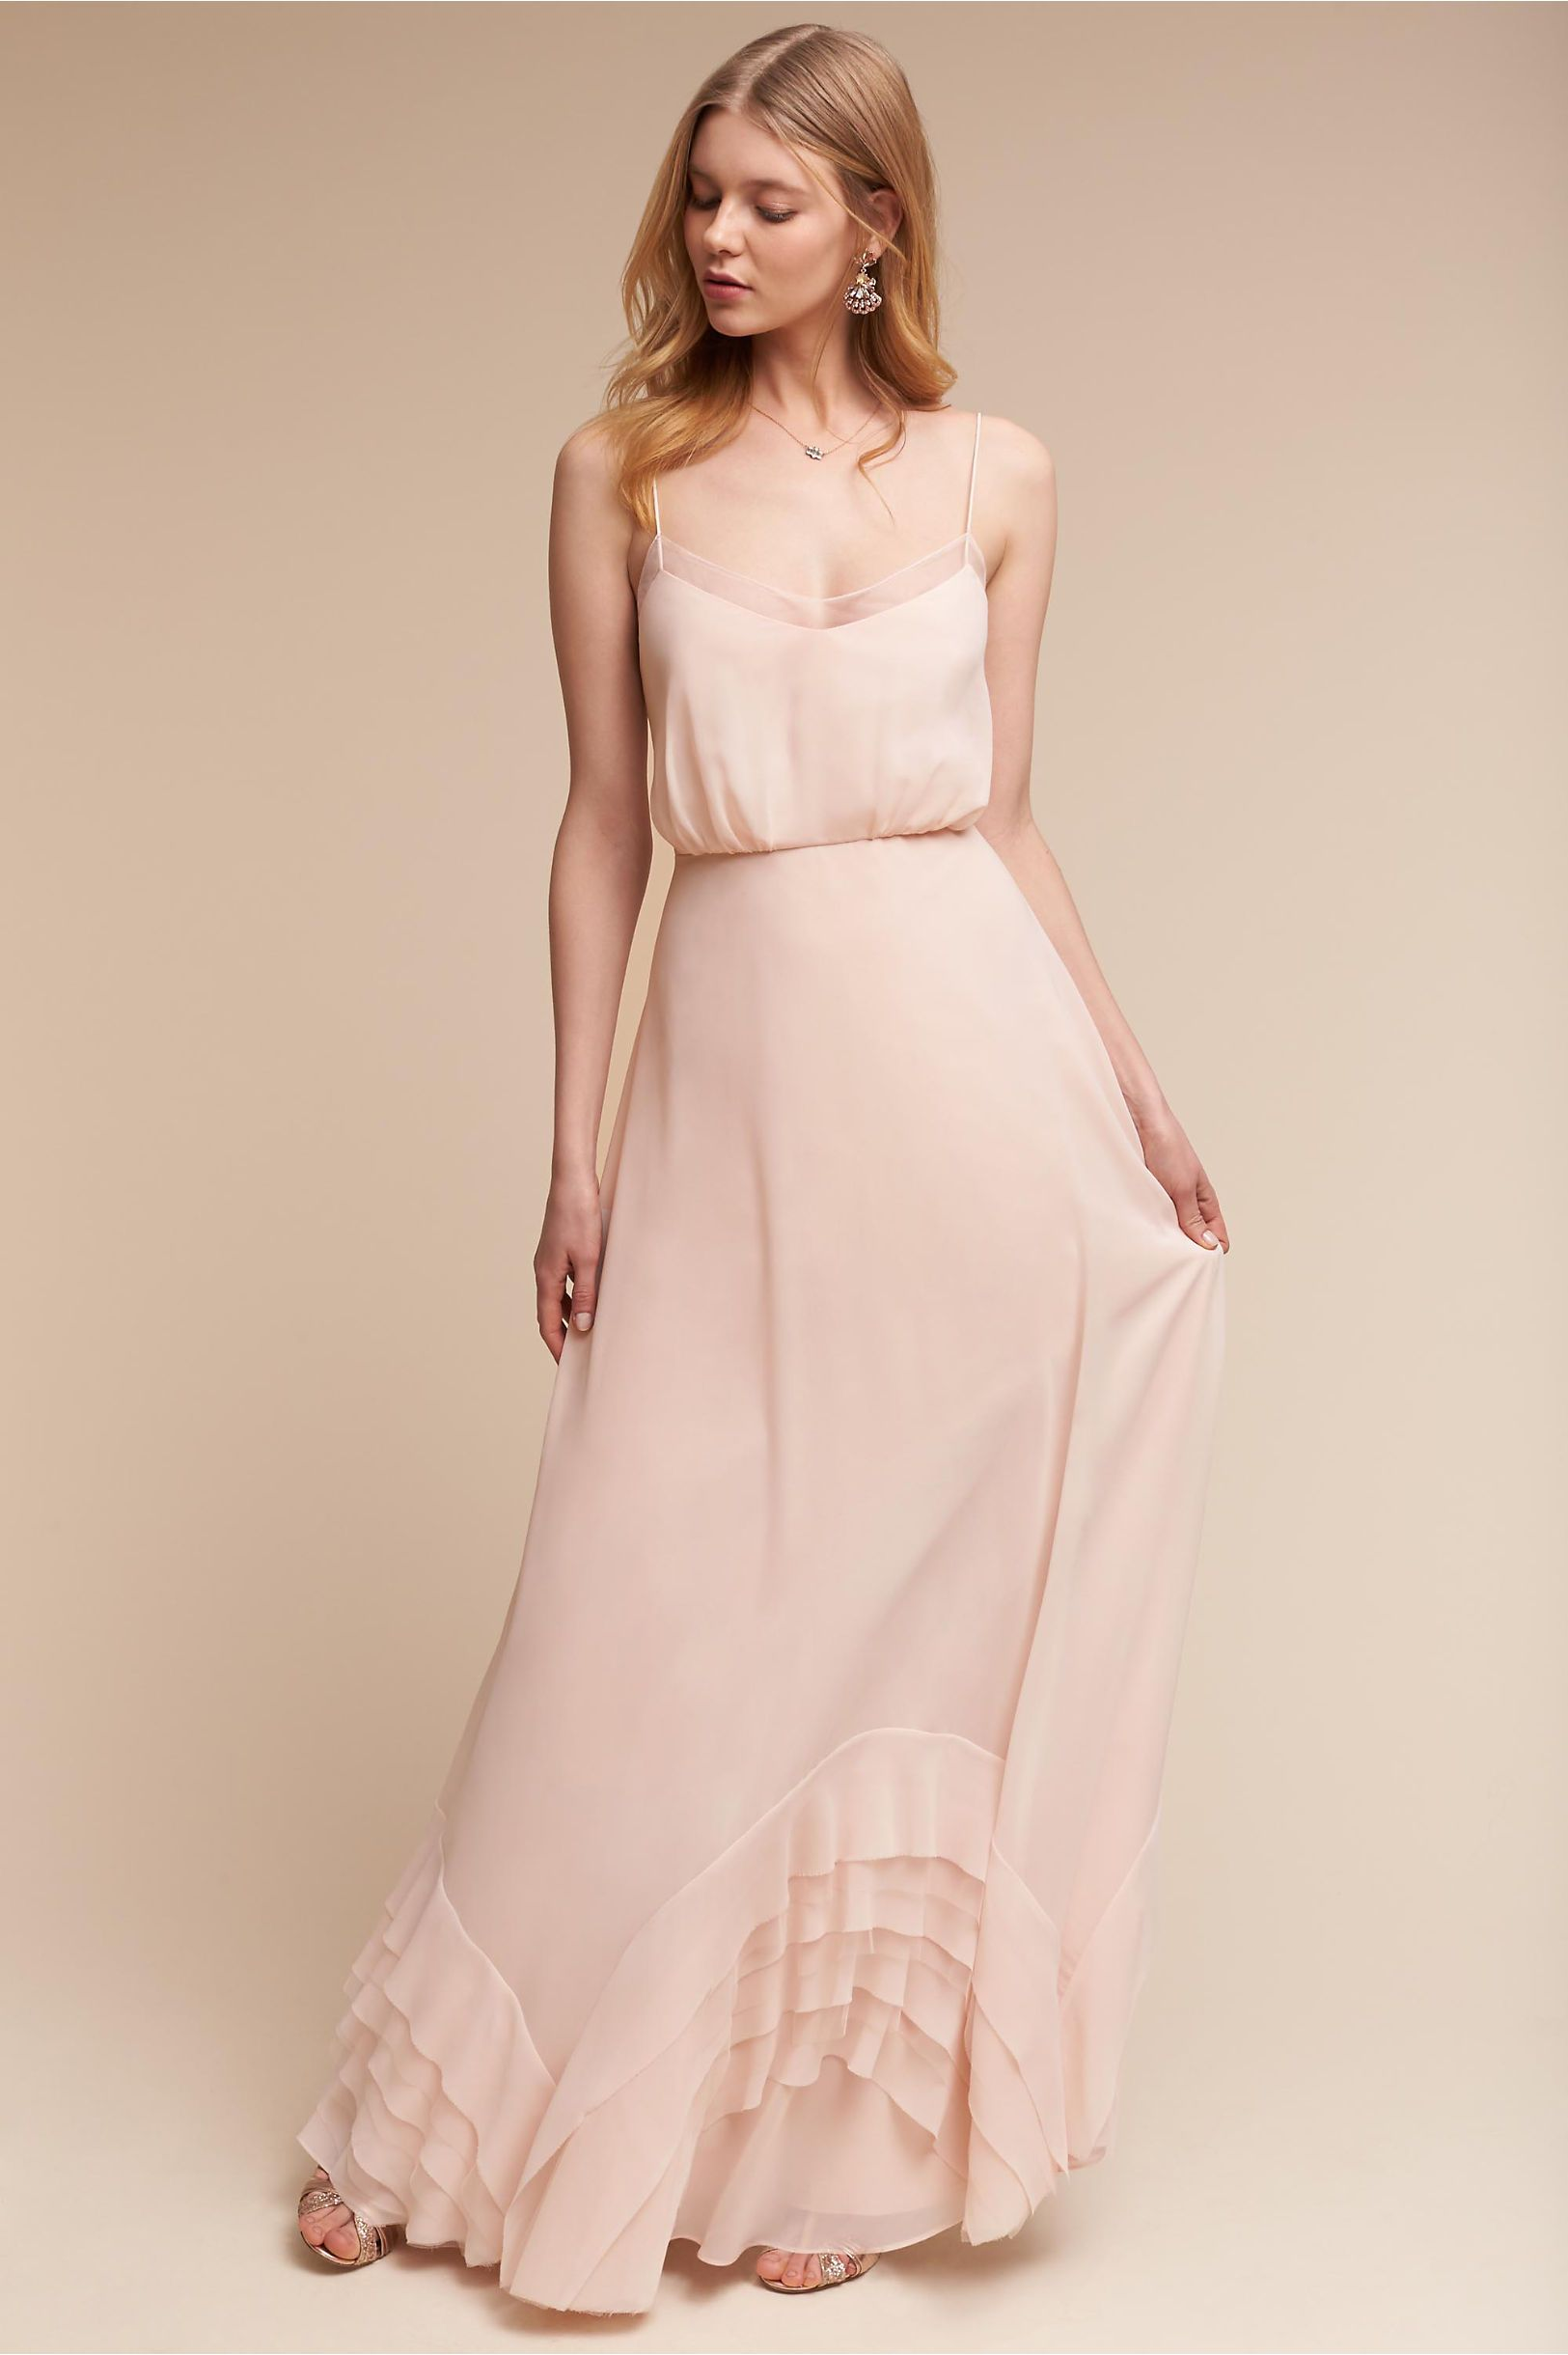 BHLDN Dove Dress in Bridesmaids View All Dresses | BHLDN | back yard ...